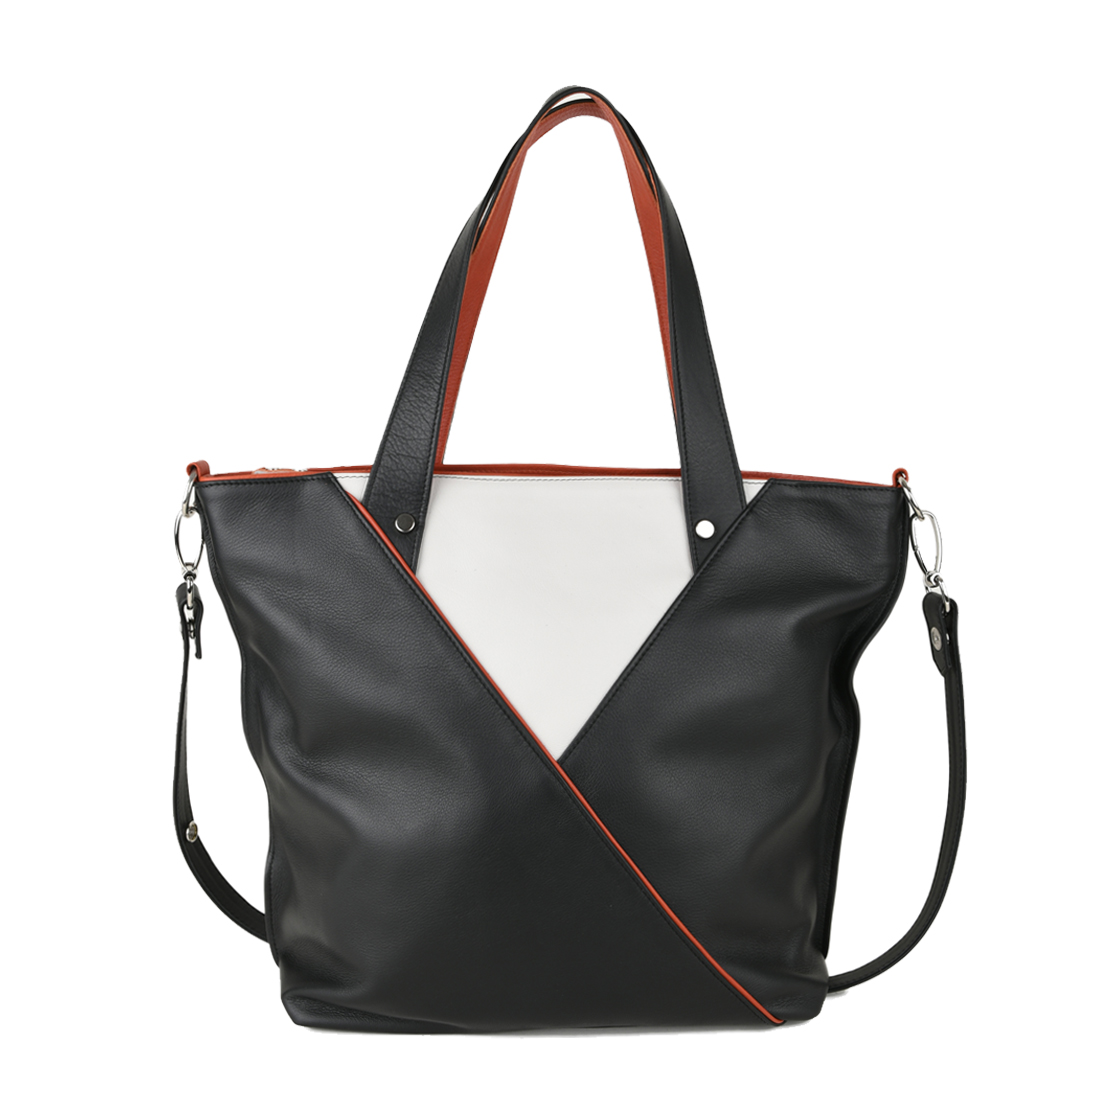 Amanda Black with Polvere Leather Tote Bag